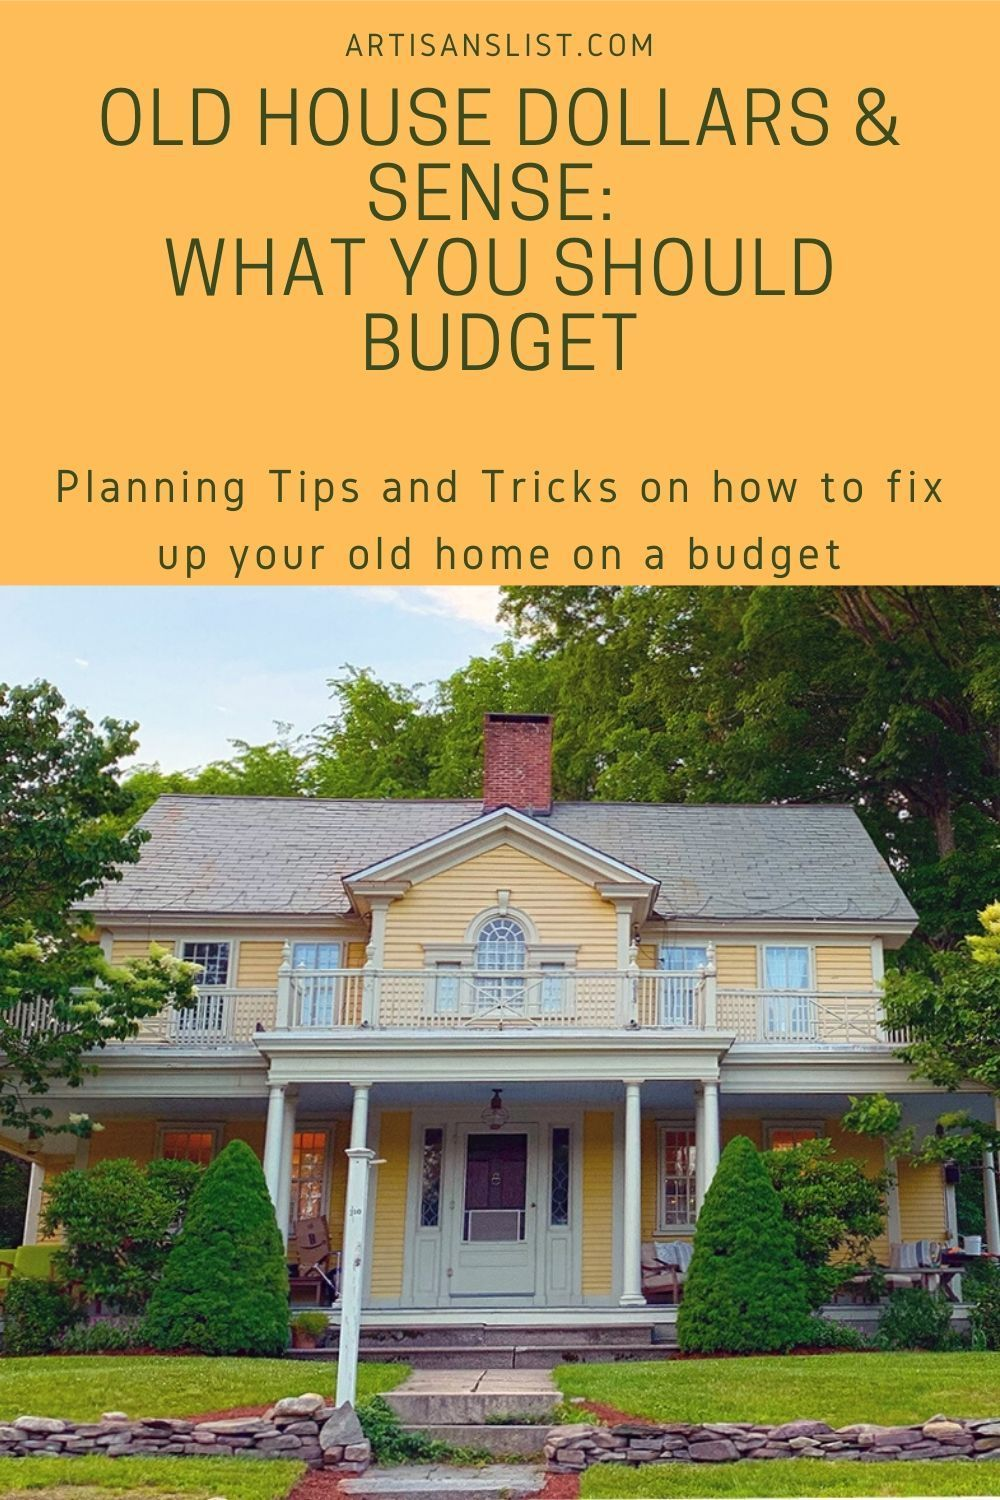 For many of us who love old houses, we can't live in anything else. We crave the character, the history, the patina on the surfaces…the whole lifestyle. But we don't always love all the challenges, the fixing, and the inevitable issues created by trying to live a 21st century life in an 18th century house #DIY #DIYhouse #fixerupper #oldhouse #houserestoration